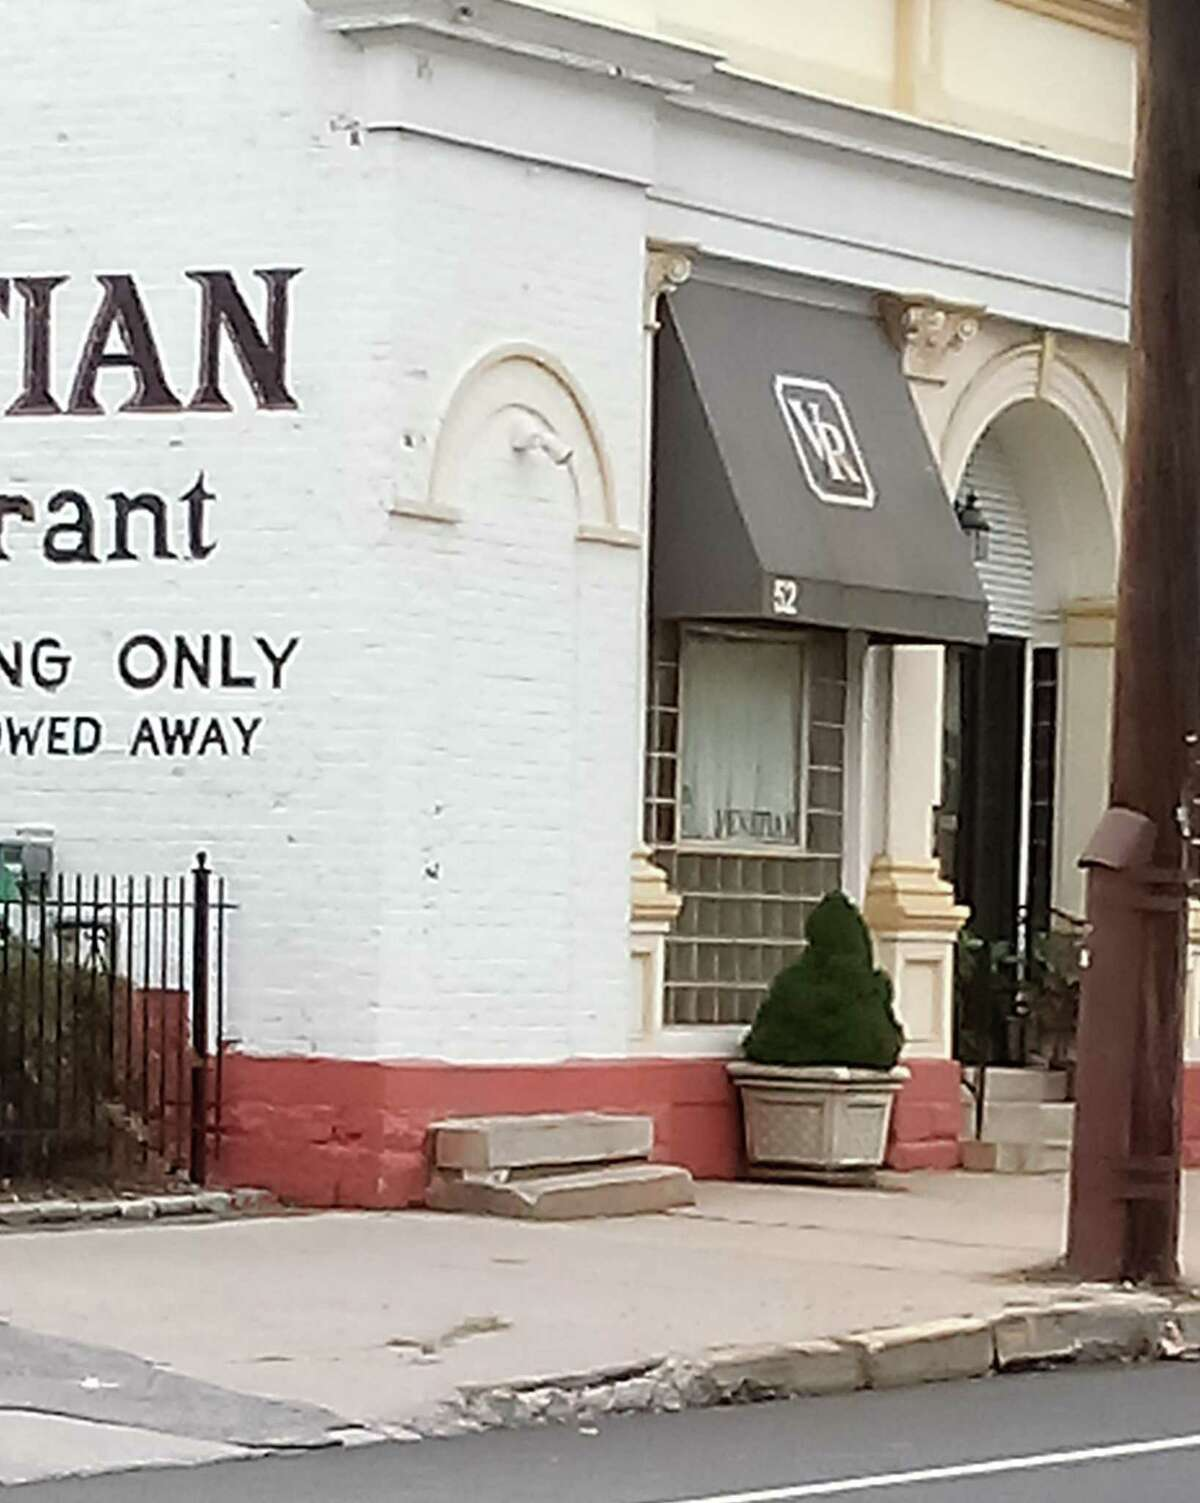 On East Main Street, The Venetian, Rick's Nutmeg Grill, Jim Rokos, Nutmeg Fudge and King's Closet are among businesses that have applied for money to repair their sidewalks and buildings through the city's Facade and Building Improvement Program.